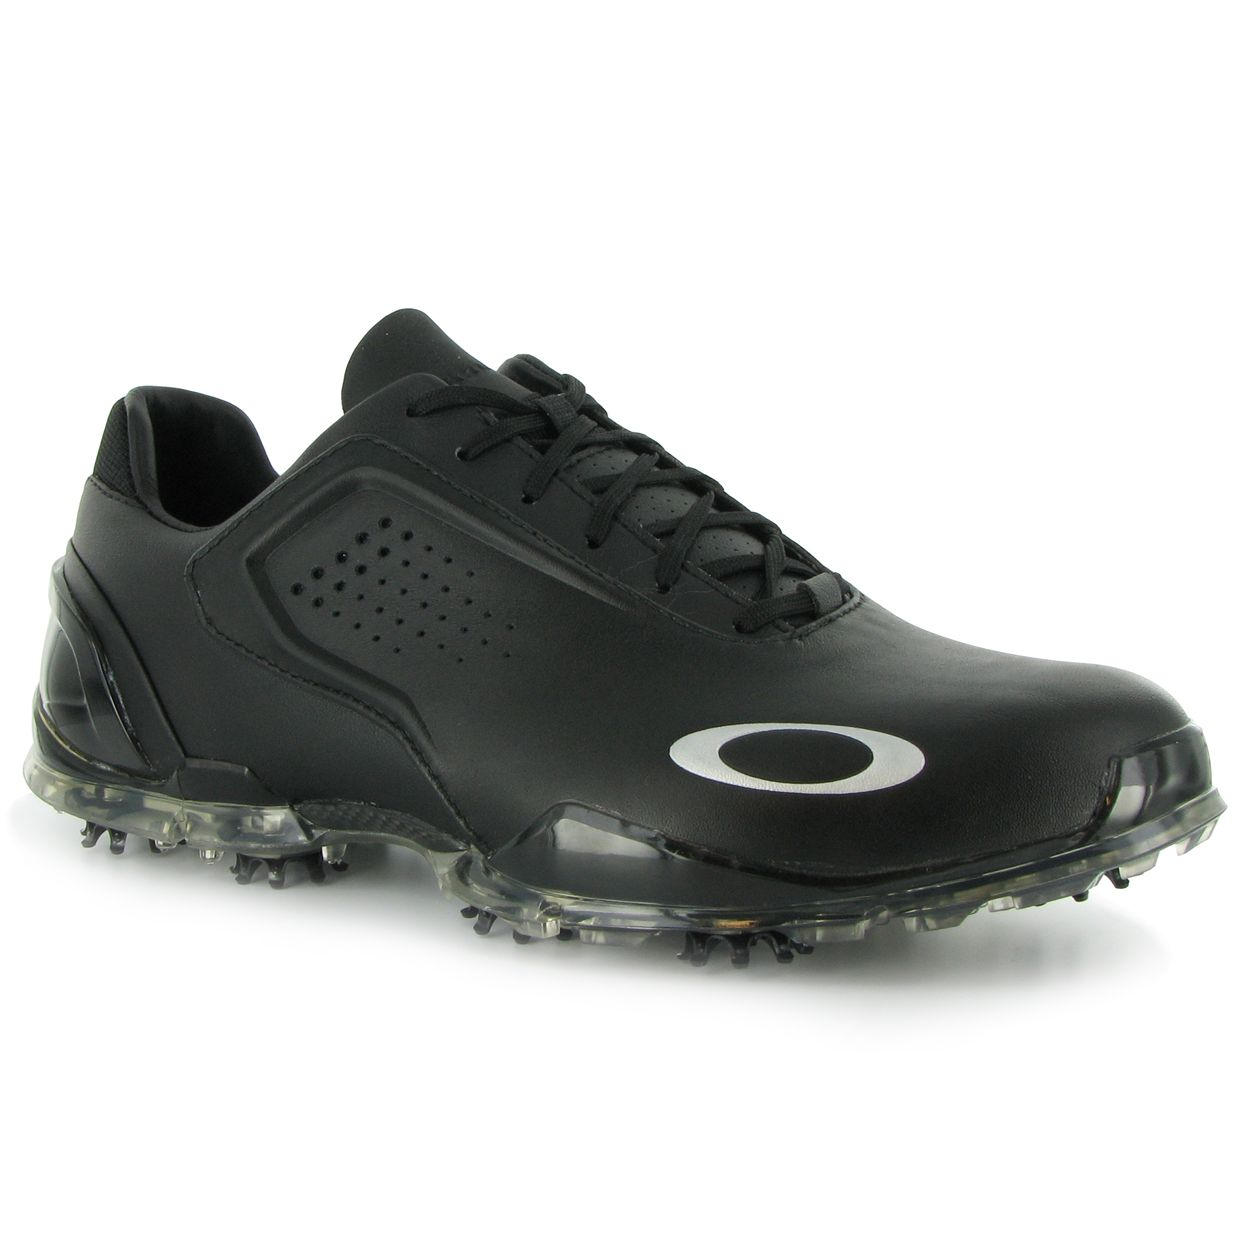 Oakley Leather Golf Shoes